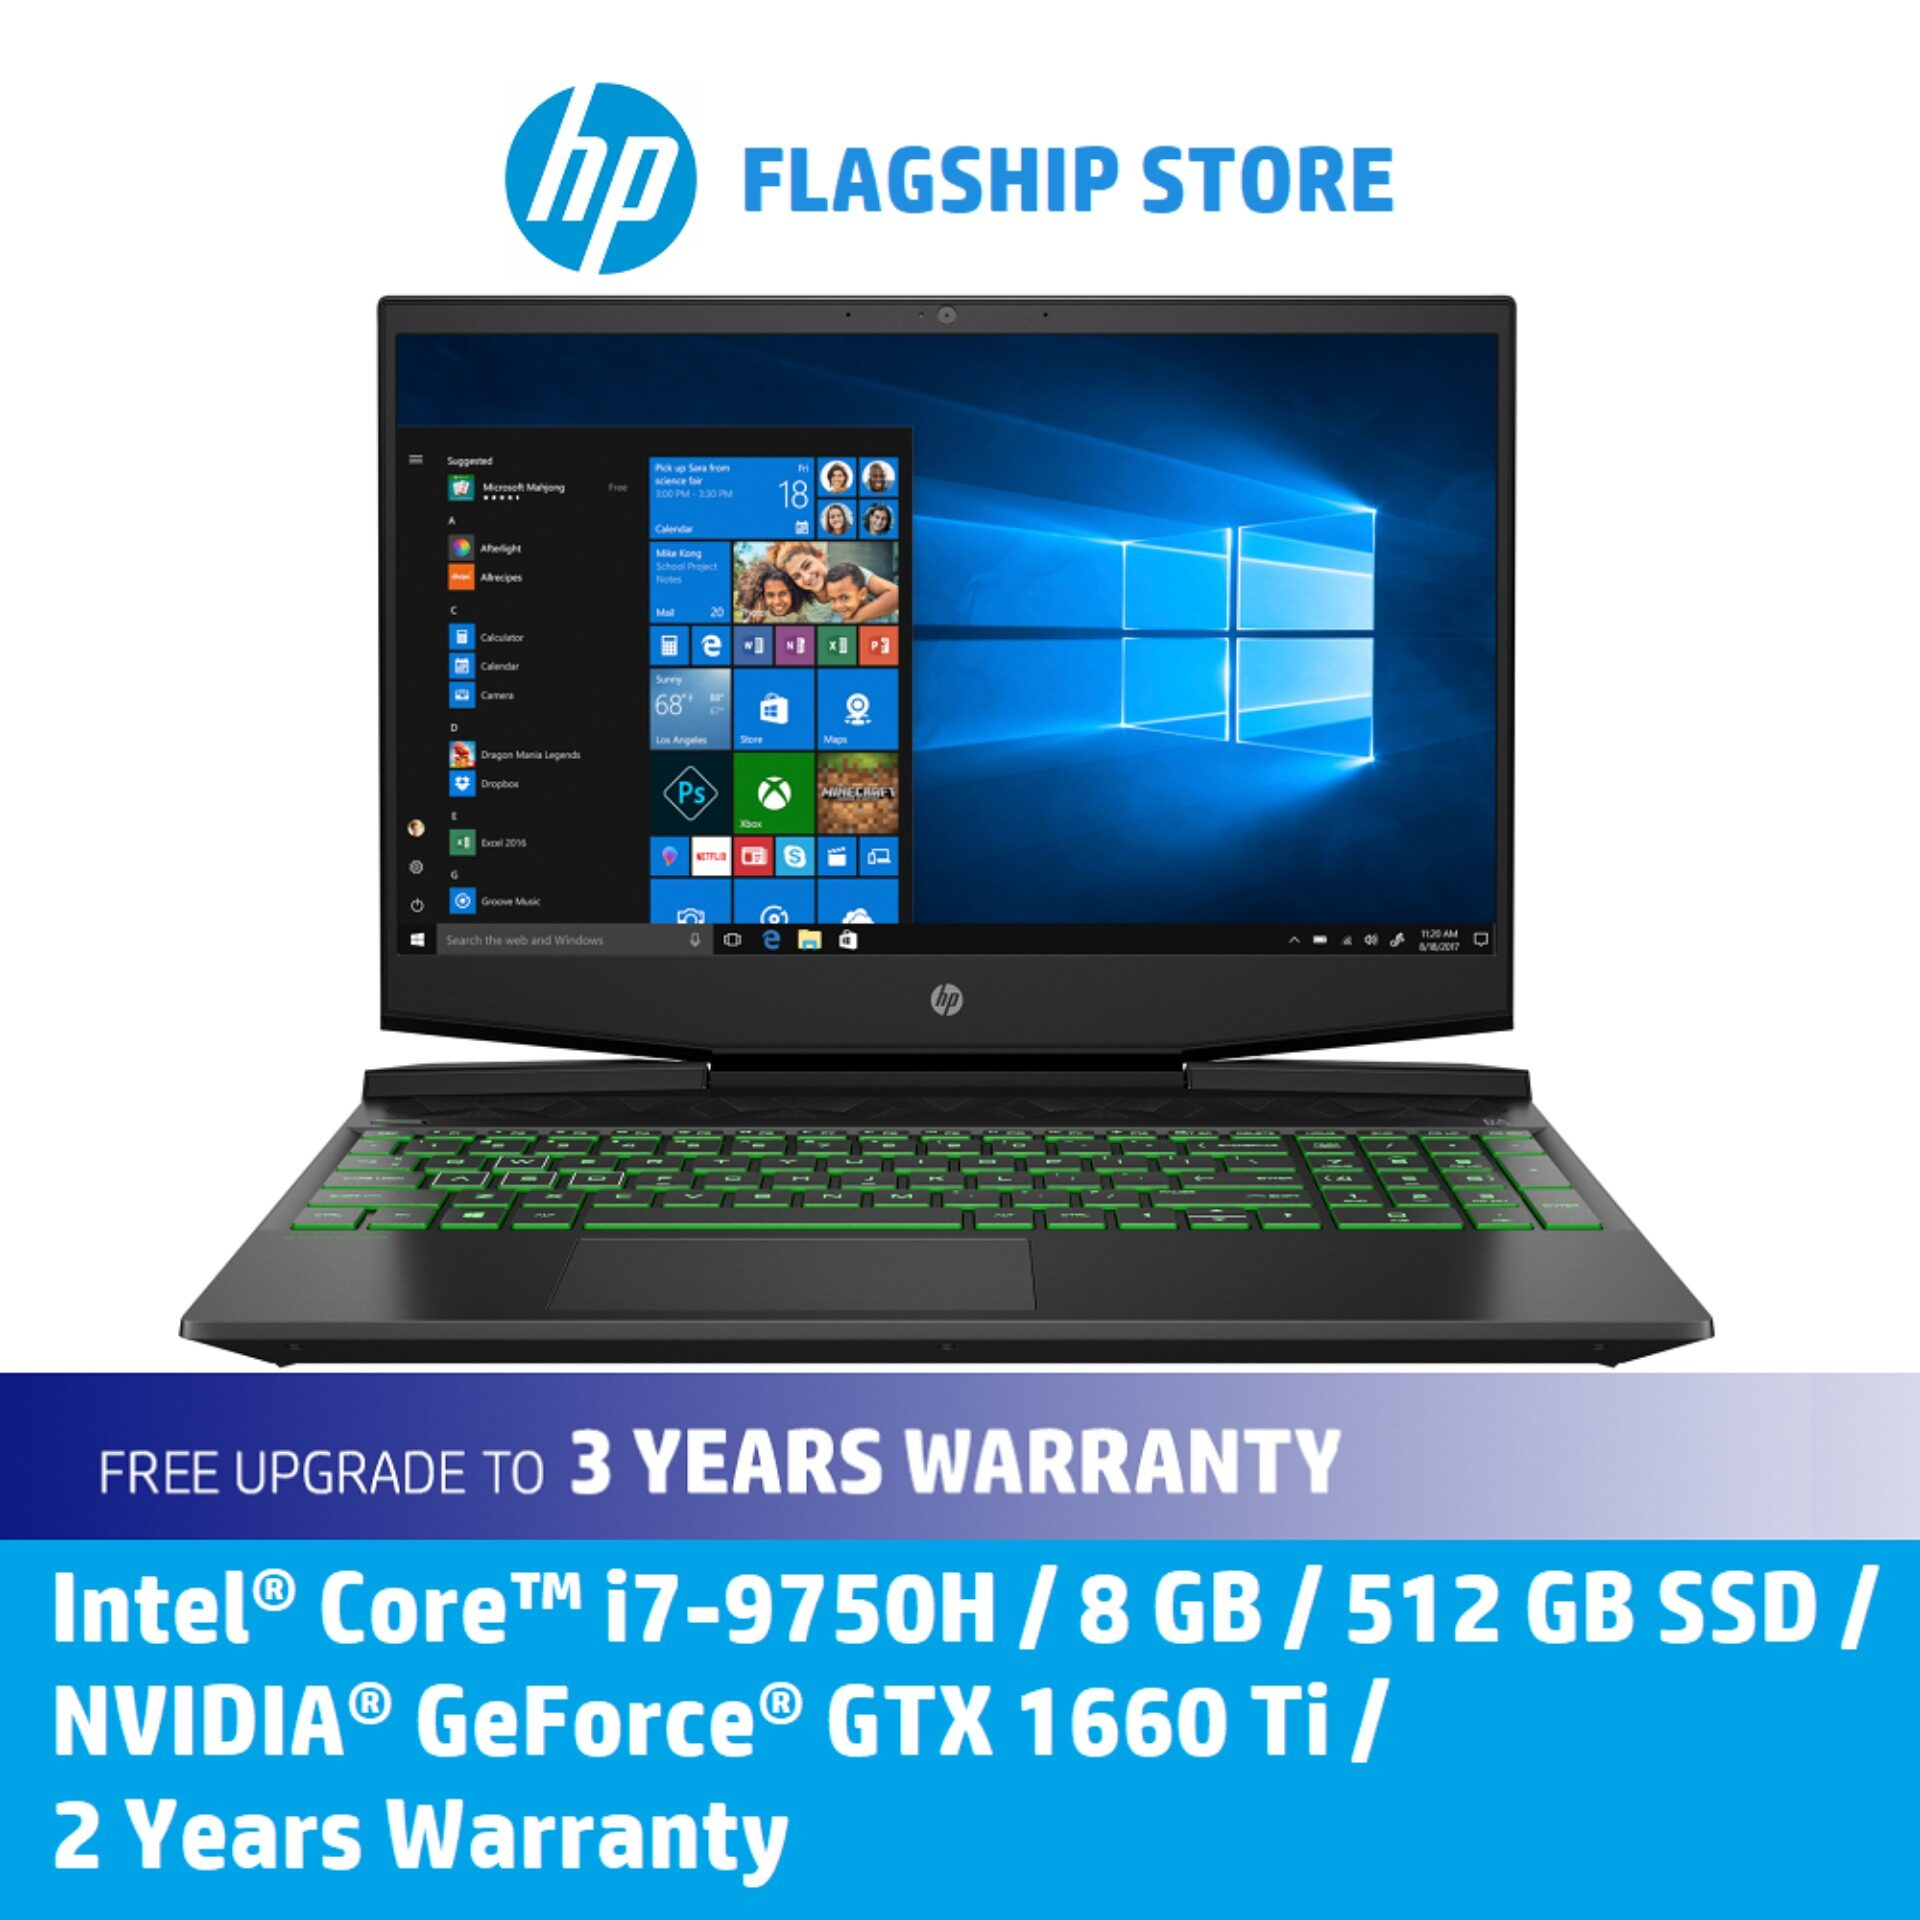 HP Gaming Laptop Pavilion - 15-dk0243tx [FREE Upgrade to 3 Years Warranty, Delivery & Backpack] Malaysia